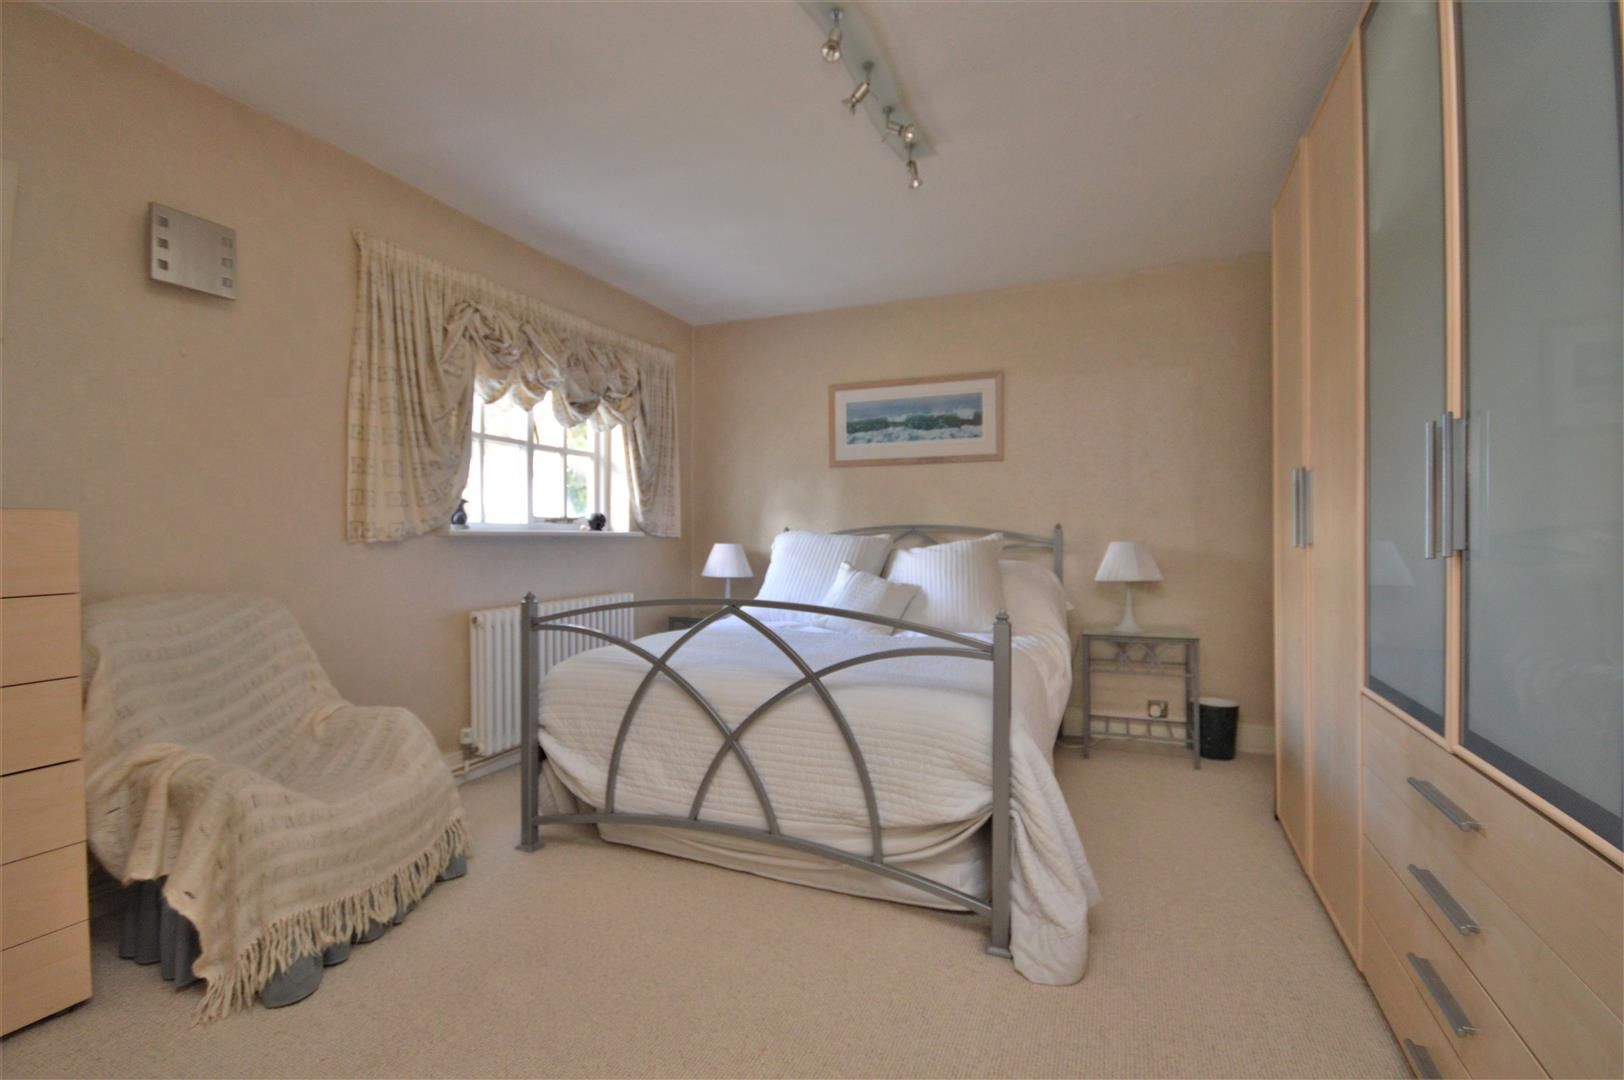 5 bed detached for sale in Stretton Sugwas 23